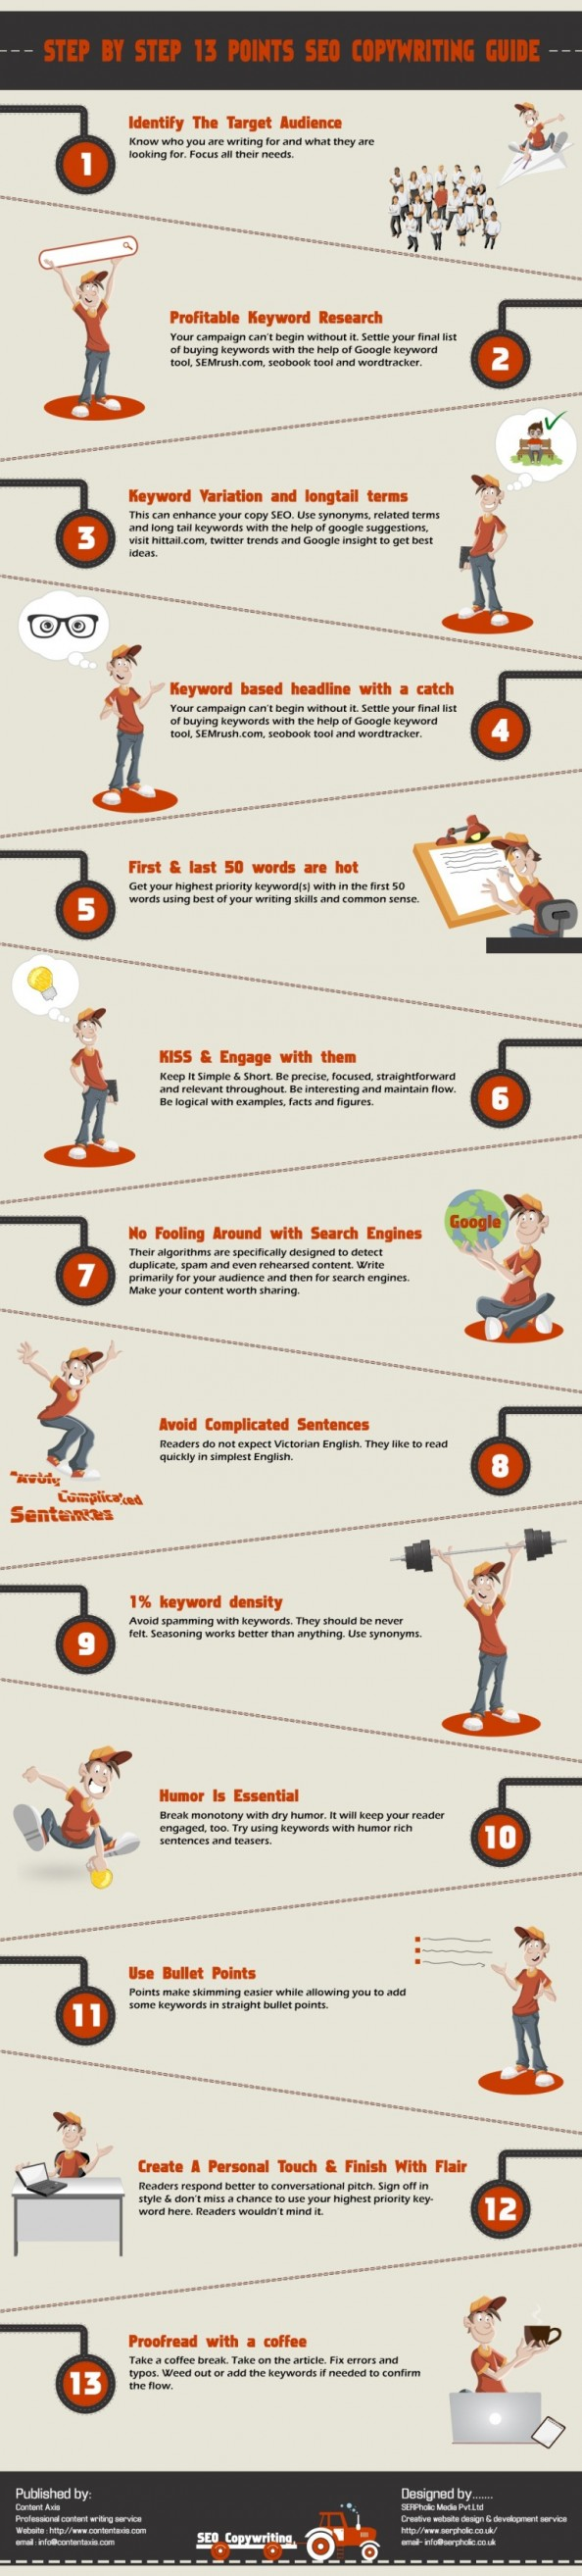 how to write copy for an infographic